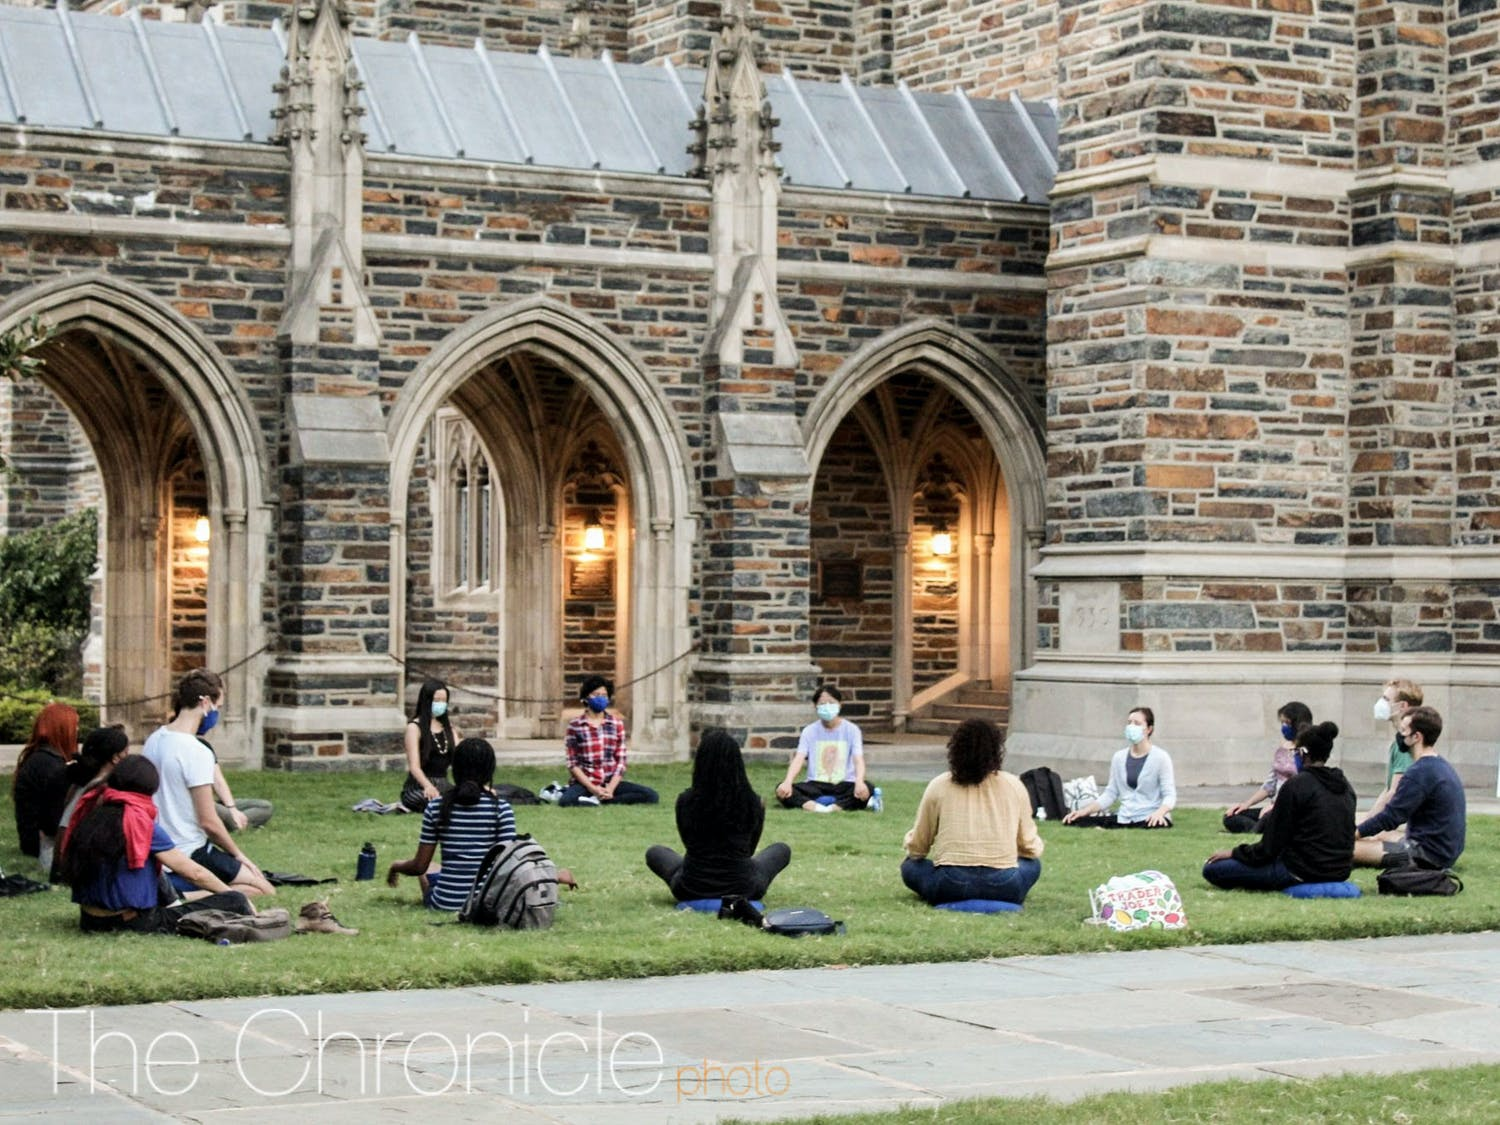 Student group leaders have been finding ways to allow everyone to participate safely in in-person events after Duke released new COVID-19 guidelines in late August.